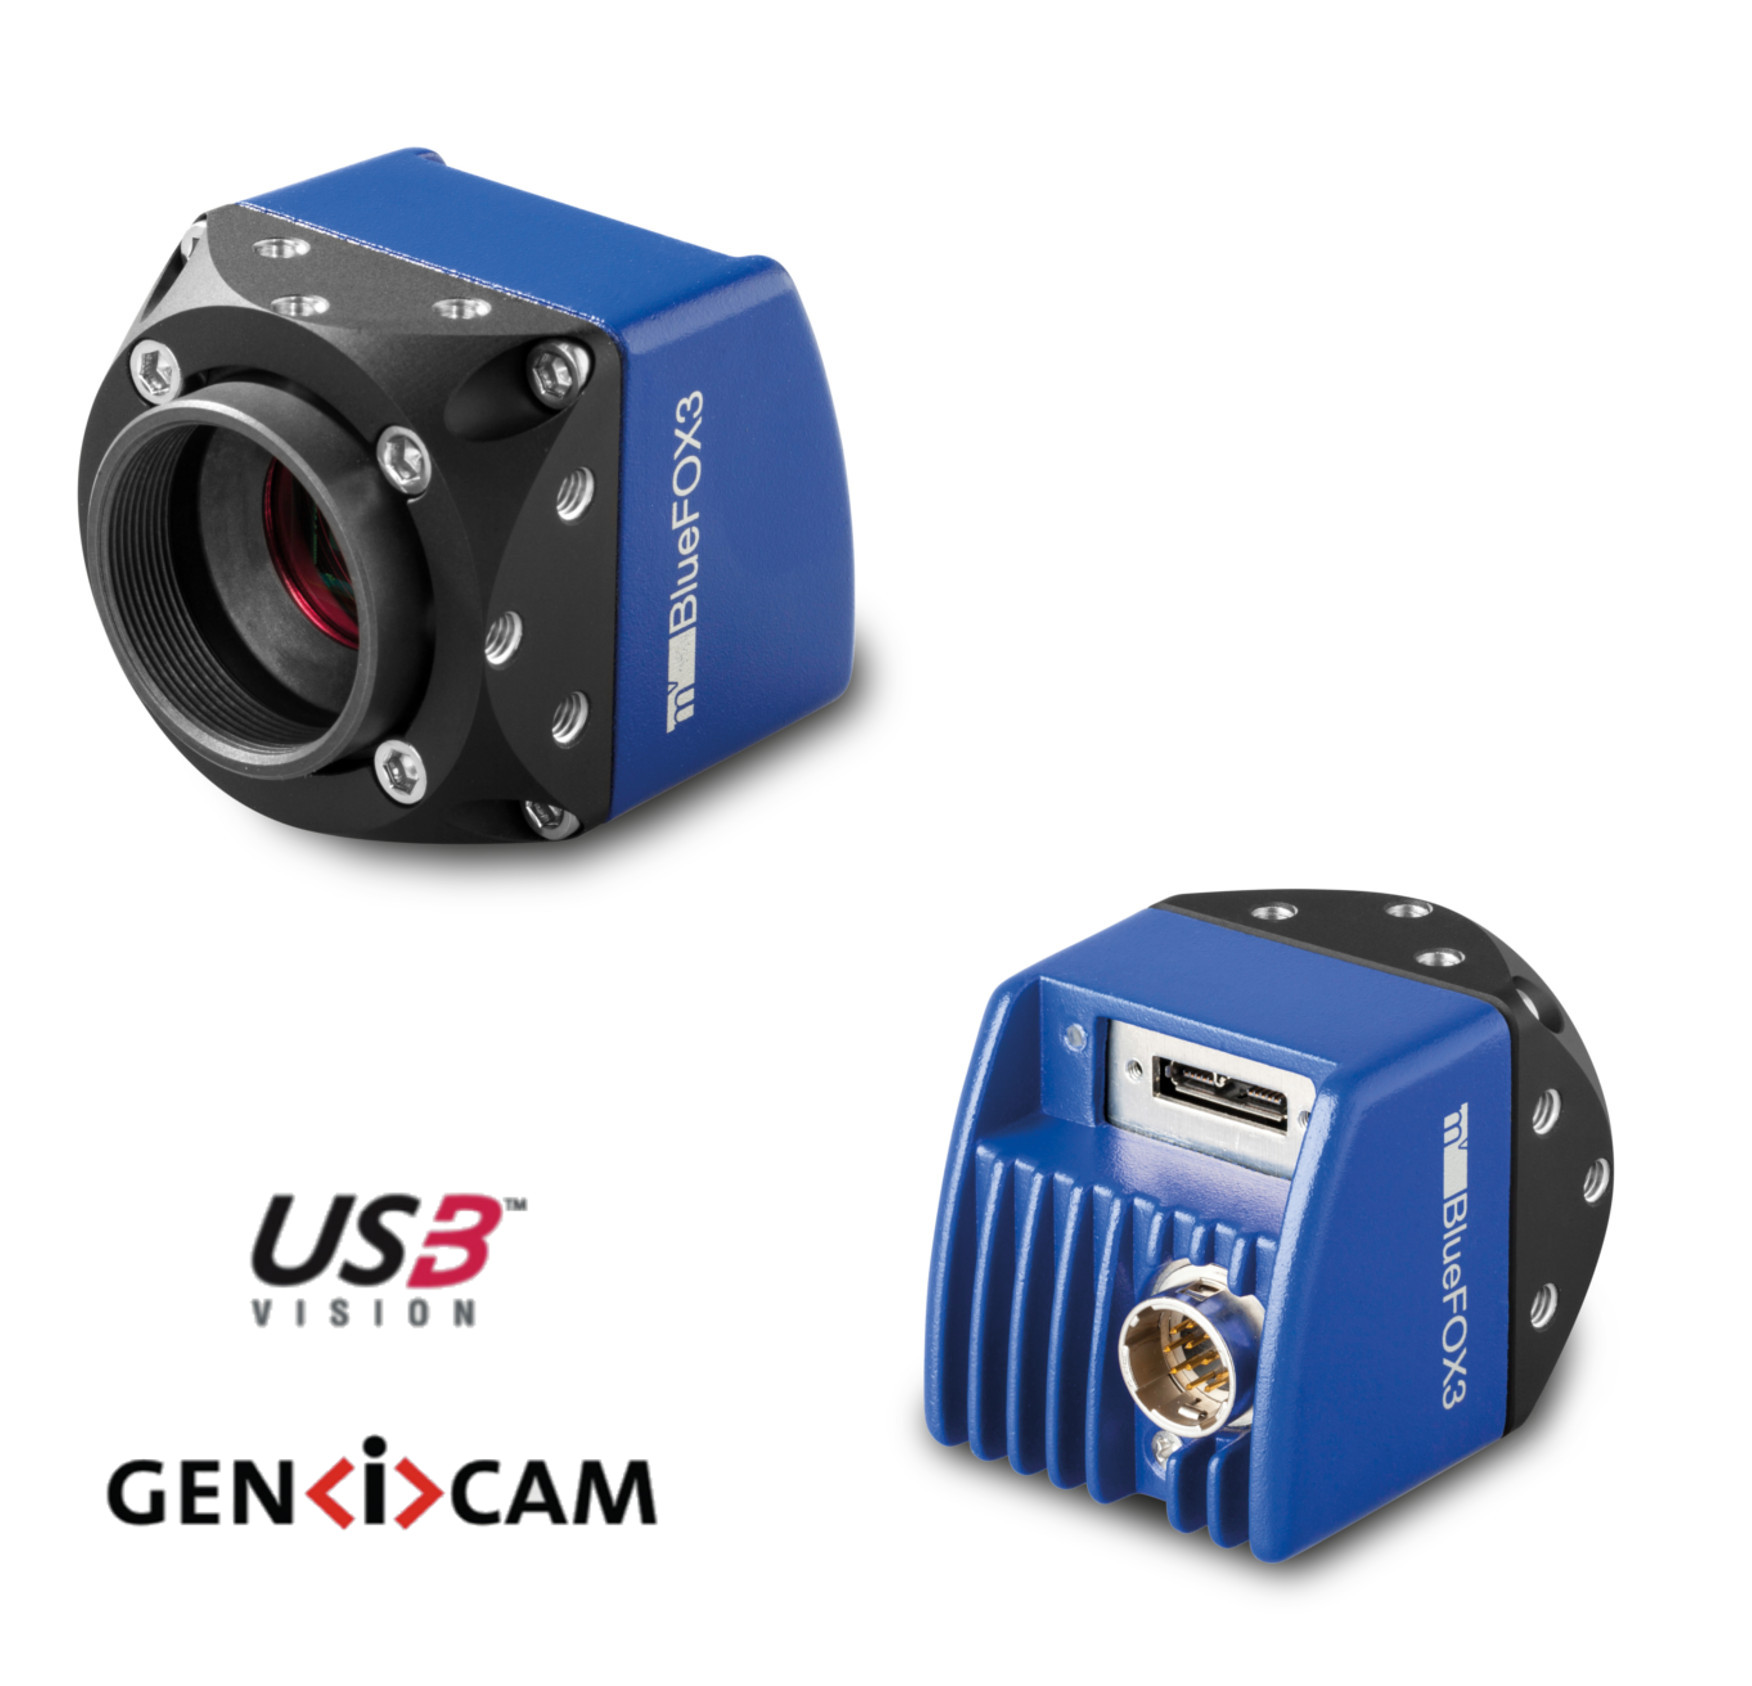 USB3 cameras with Smart Features